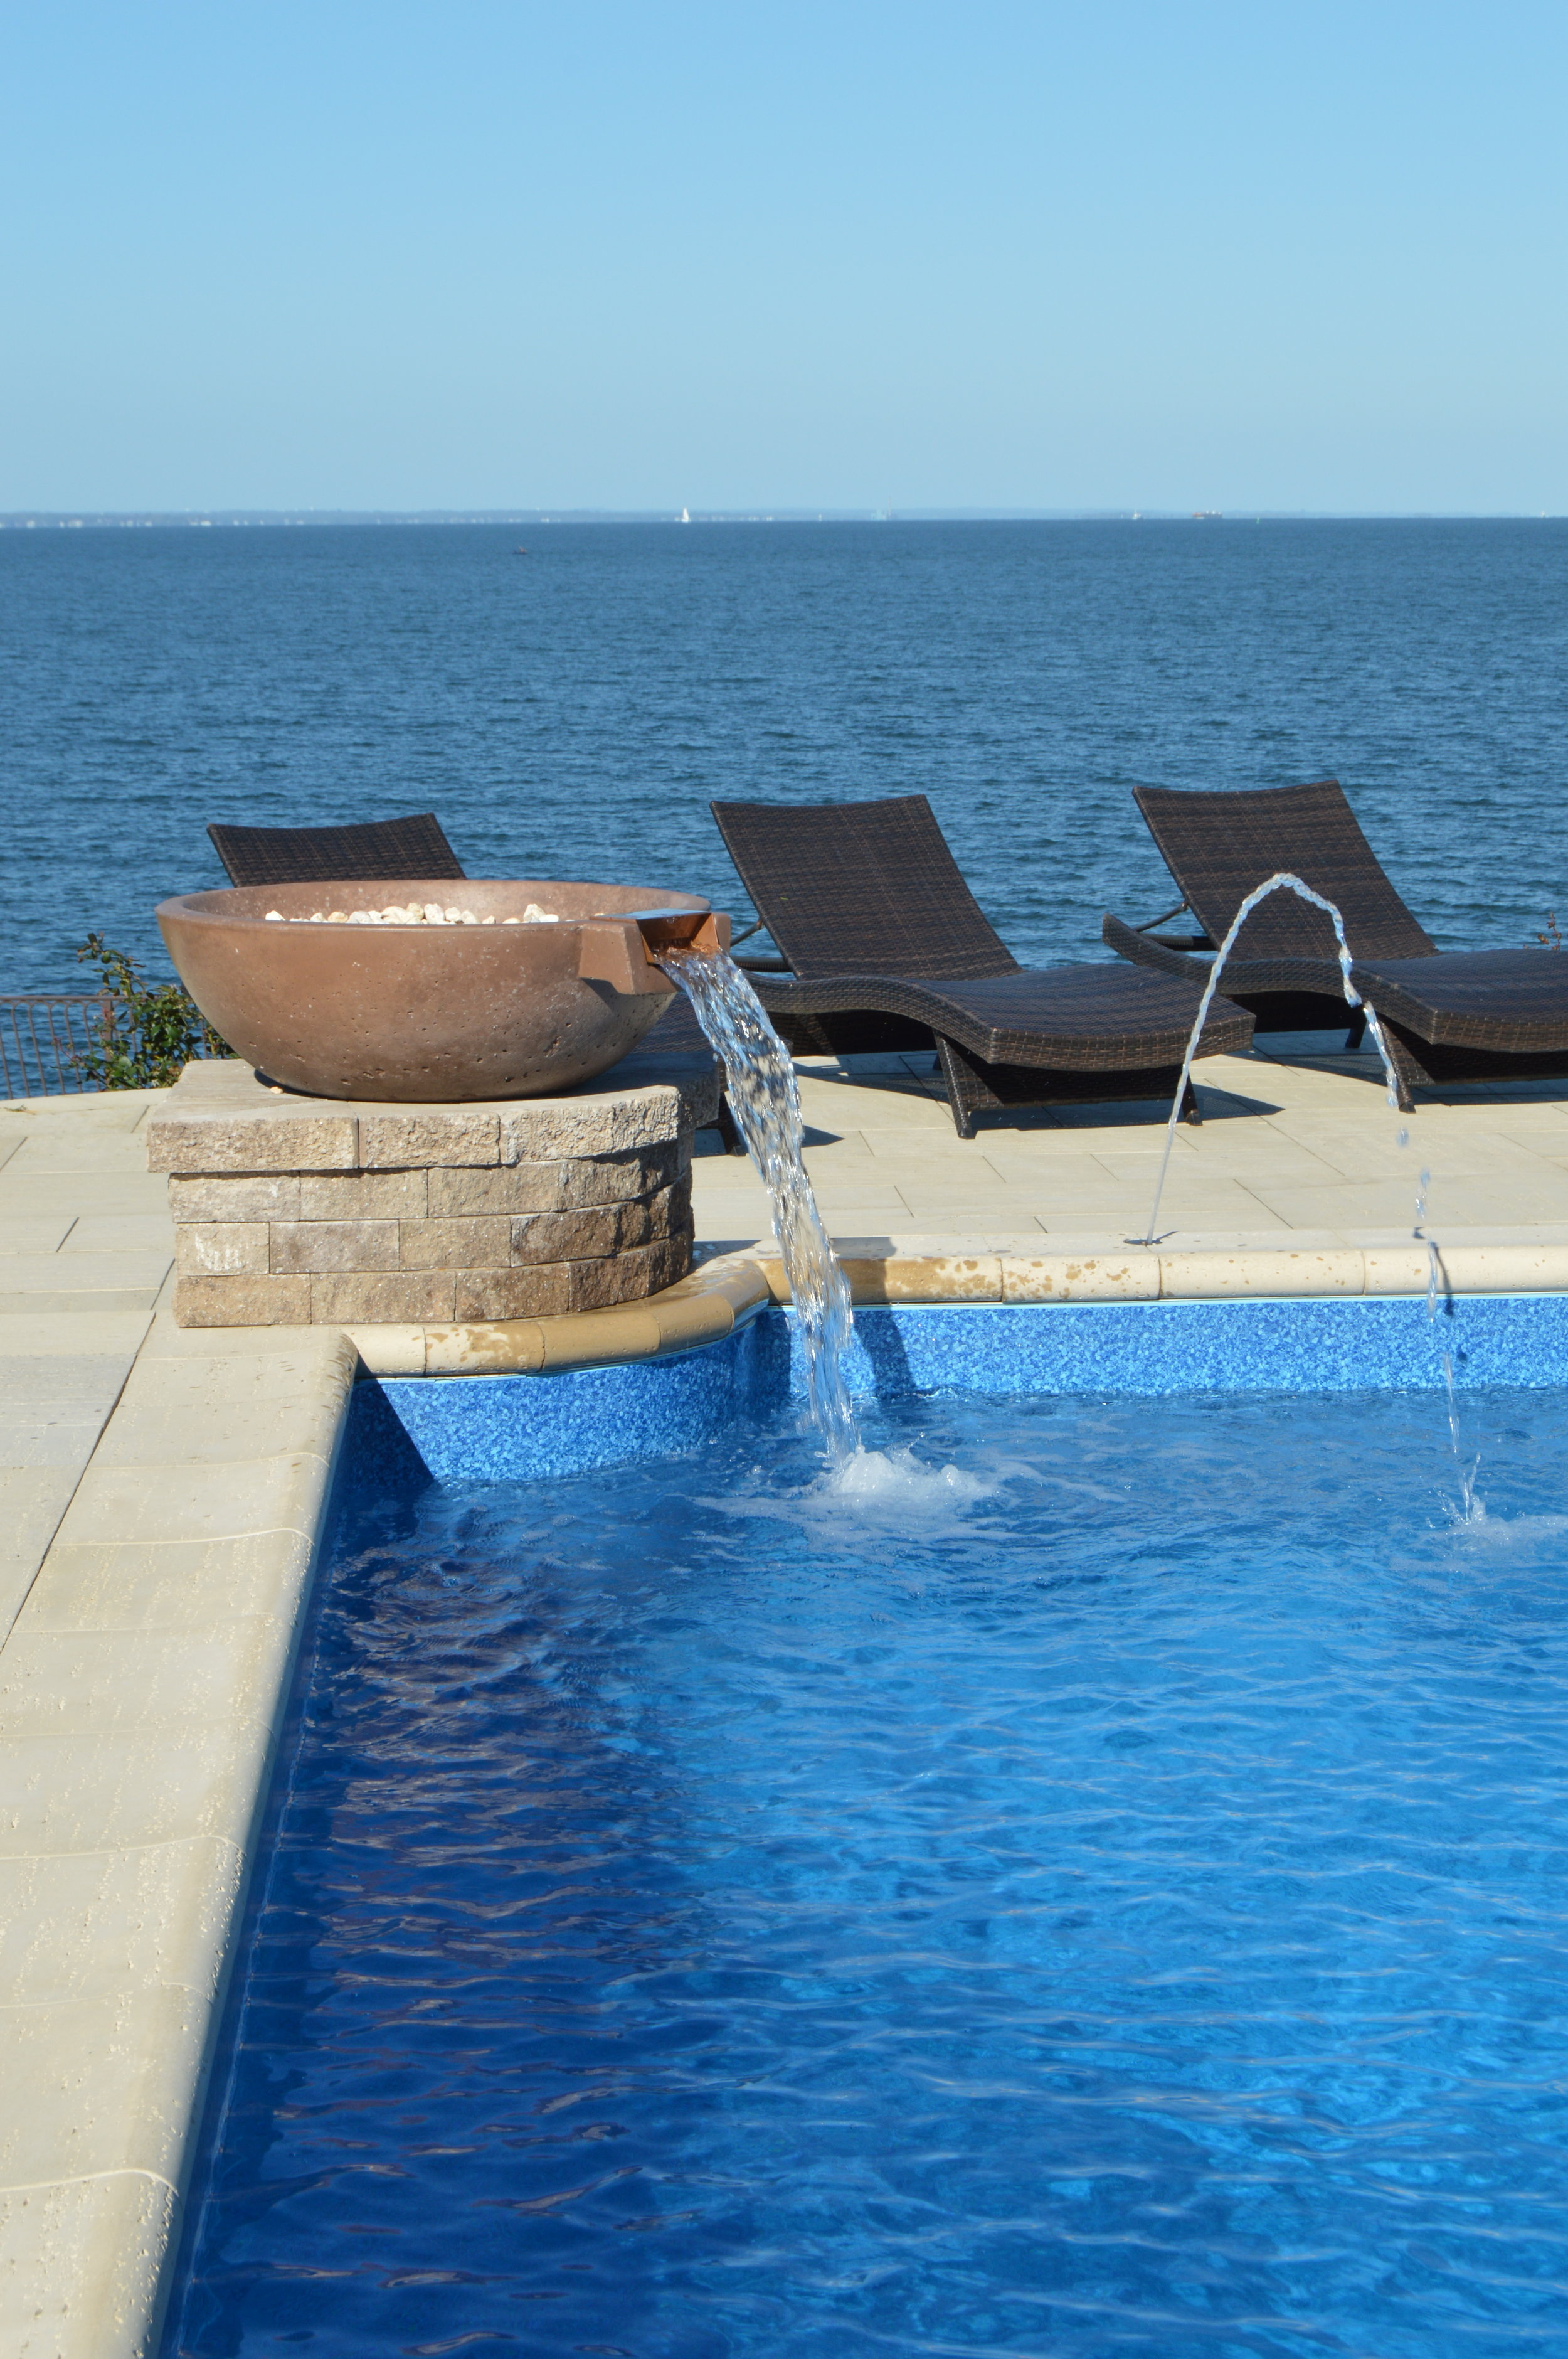 Include One of These Stunning Water Features for Your Hicksville, NY, Swimming Pool Design